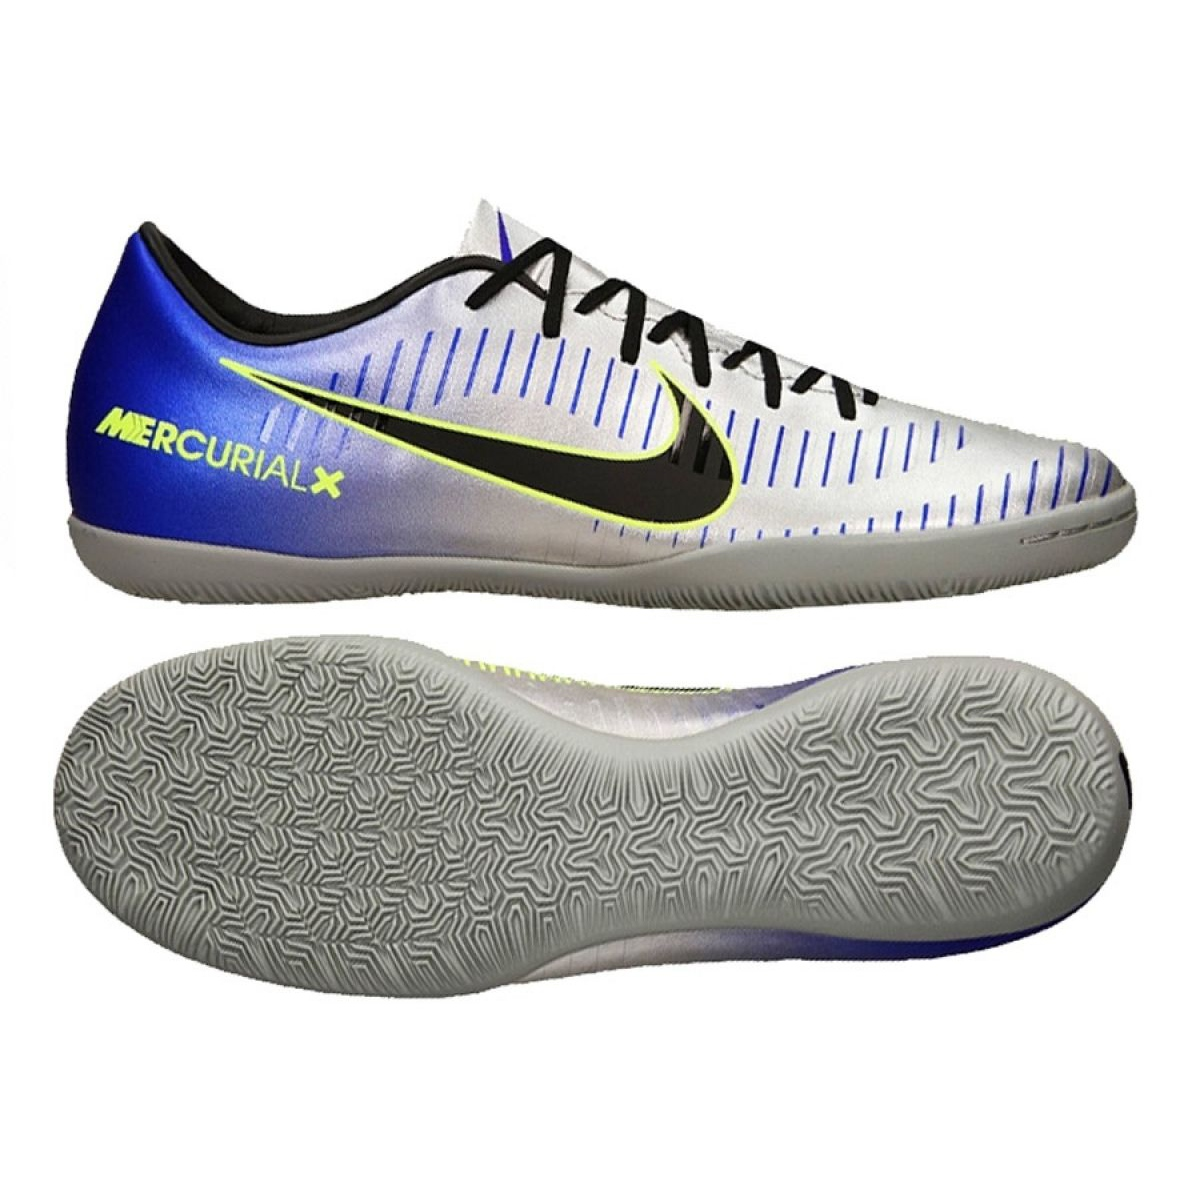 low priced 19033 10e5a Indoor shoes Nike MercurialX Victory Vi Neymar Ic M 921516-407